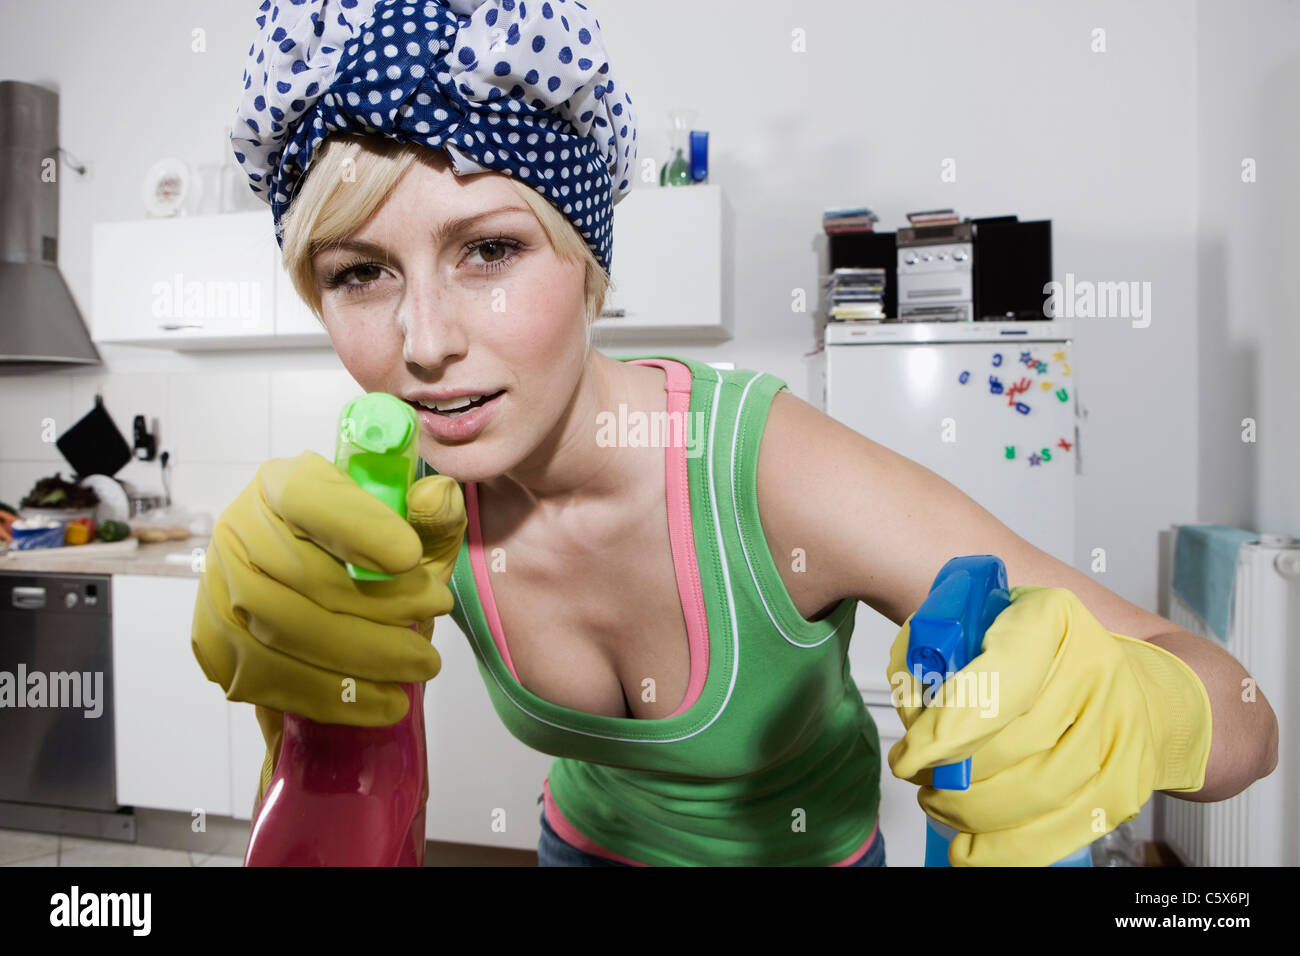 Junge Küche Berlin Germany Housewife Stockfotos And Germany Housewife Bilder